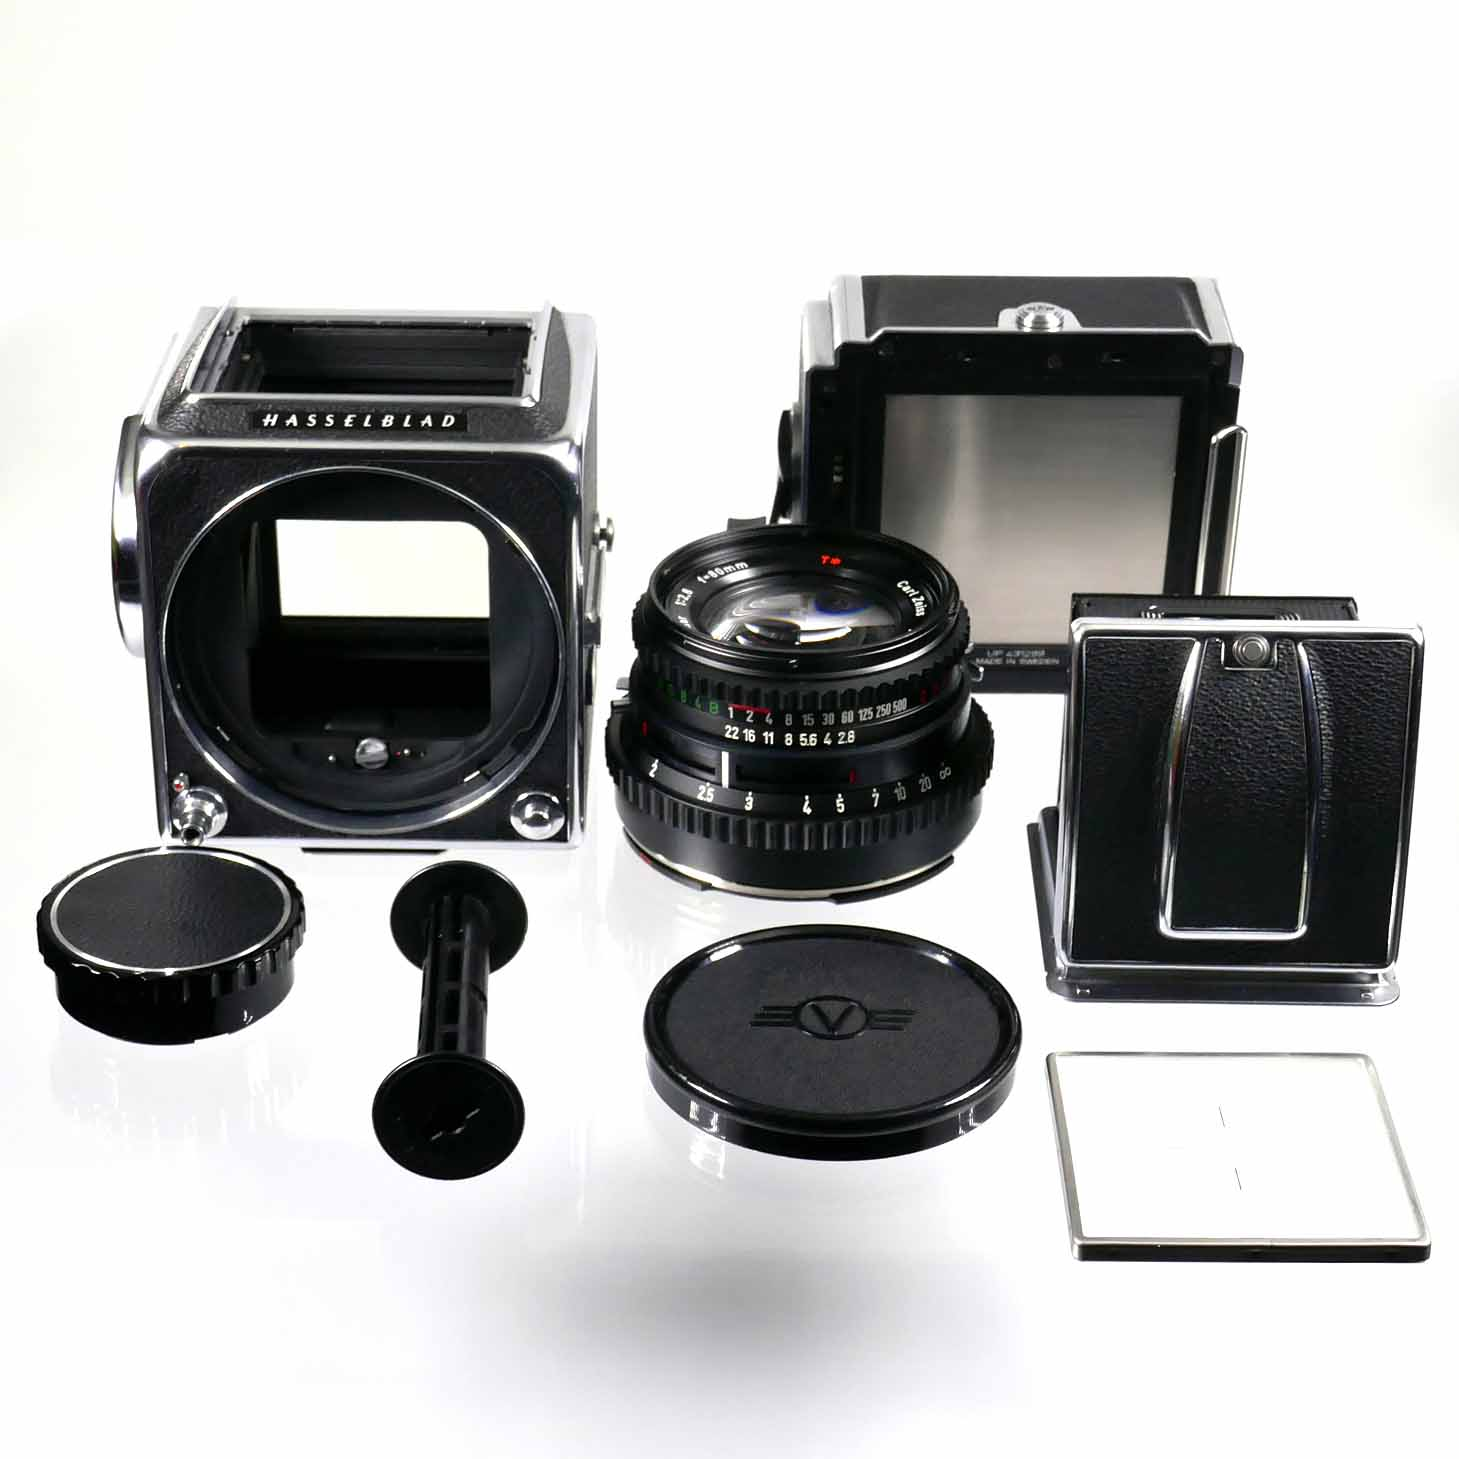 clean-cameras-Hasselblad-500cm-Carl-Zeiss-80mm-13